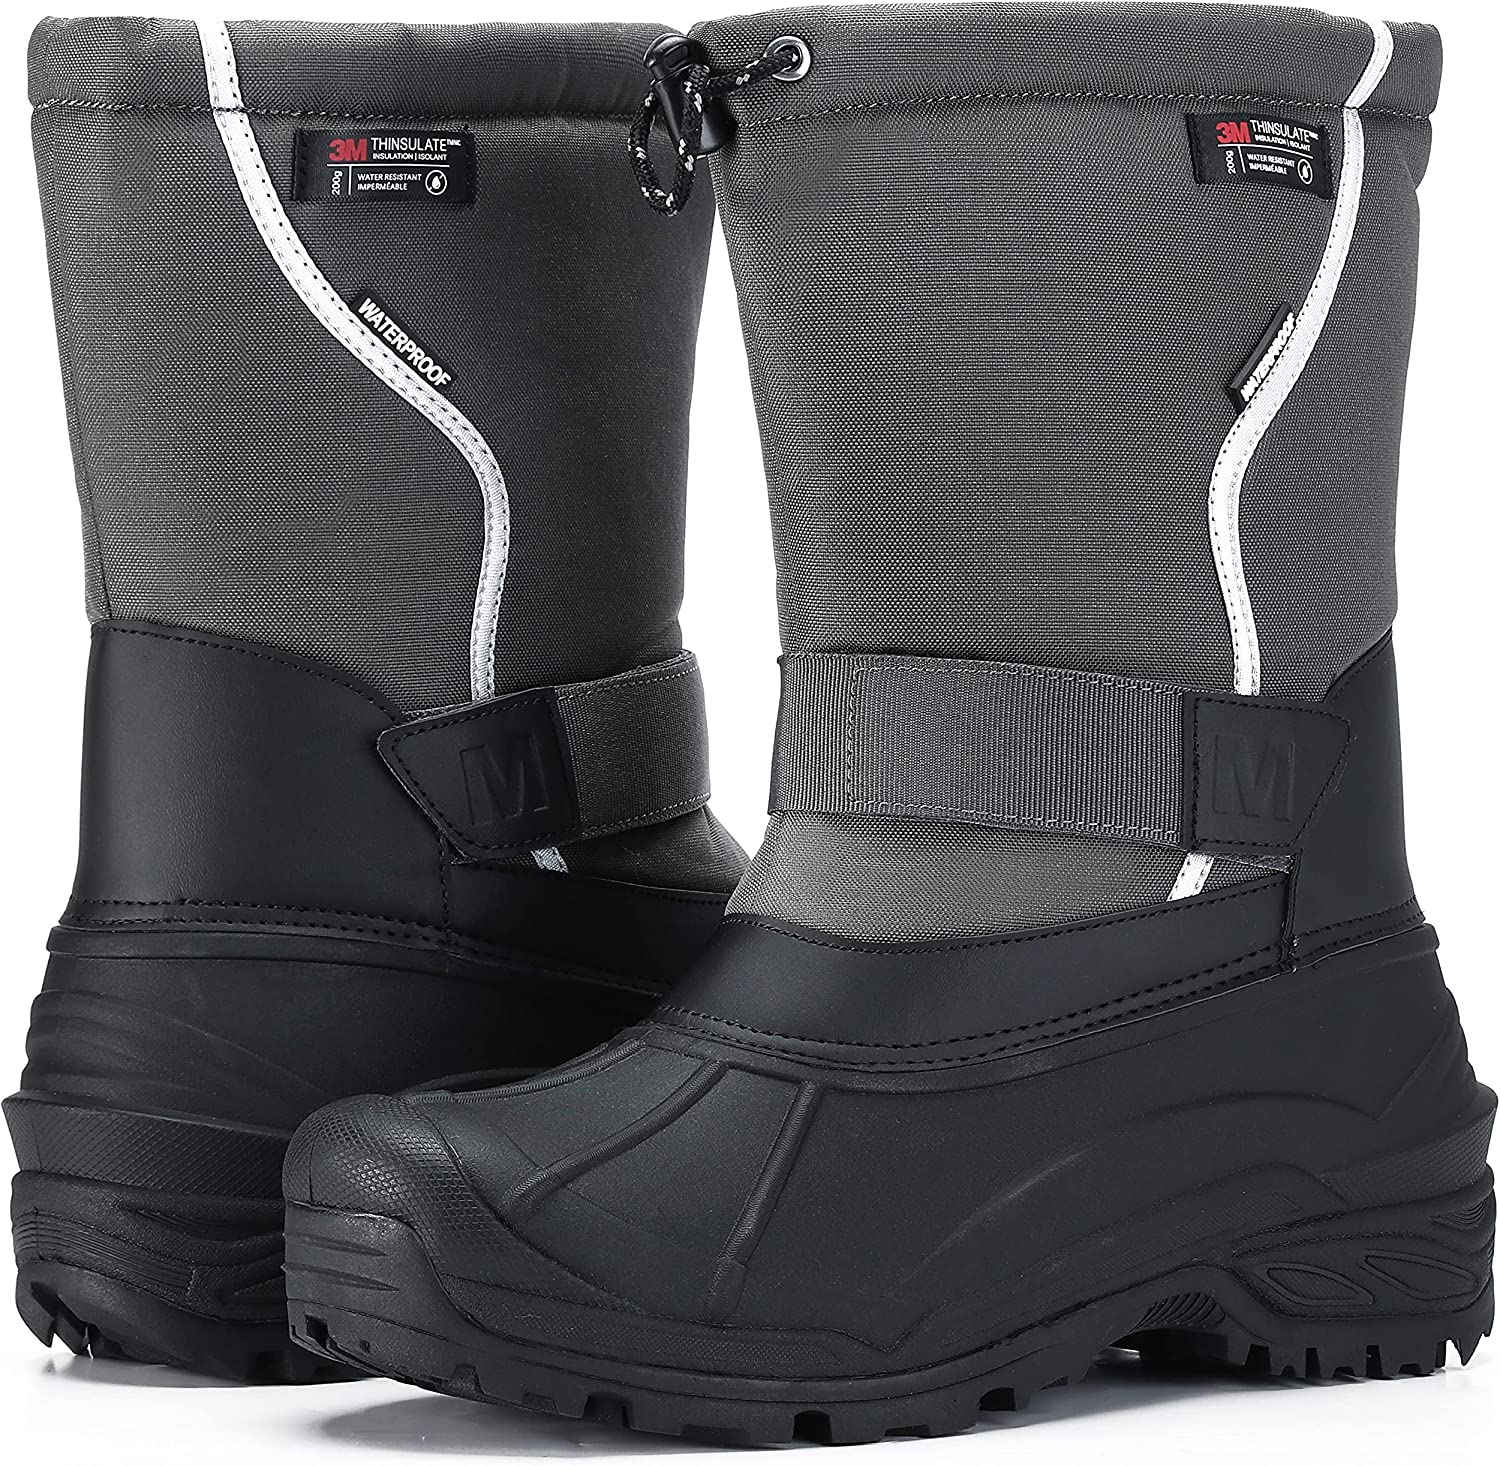 Super sale period limited MORENDL Men's Snow Boots T Waterproof Non-slip Cold-Weather Special Campaign